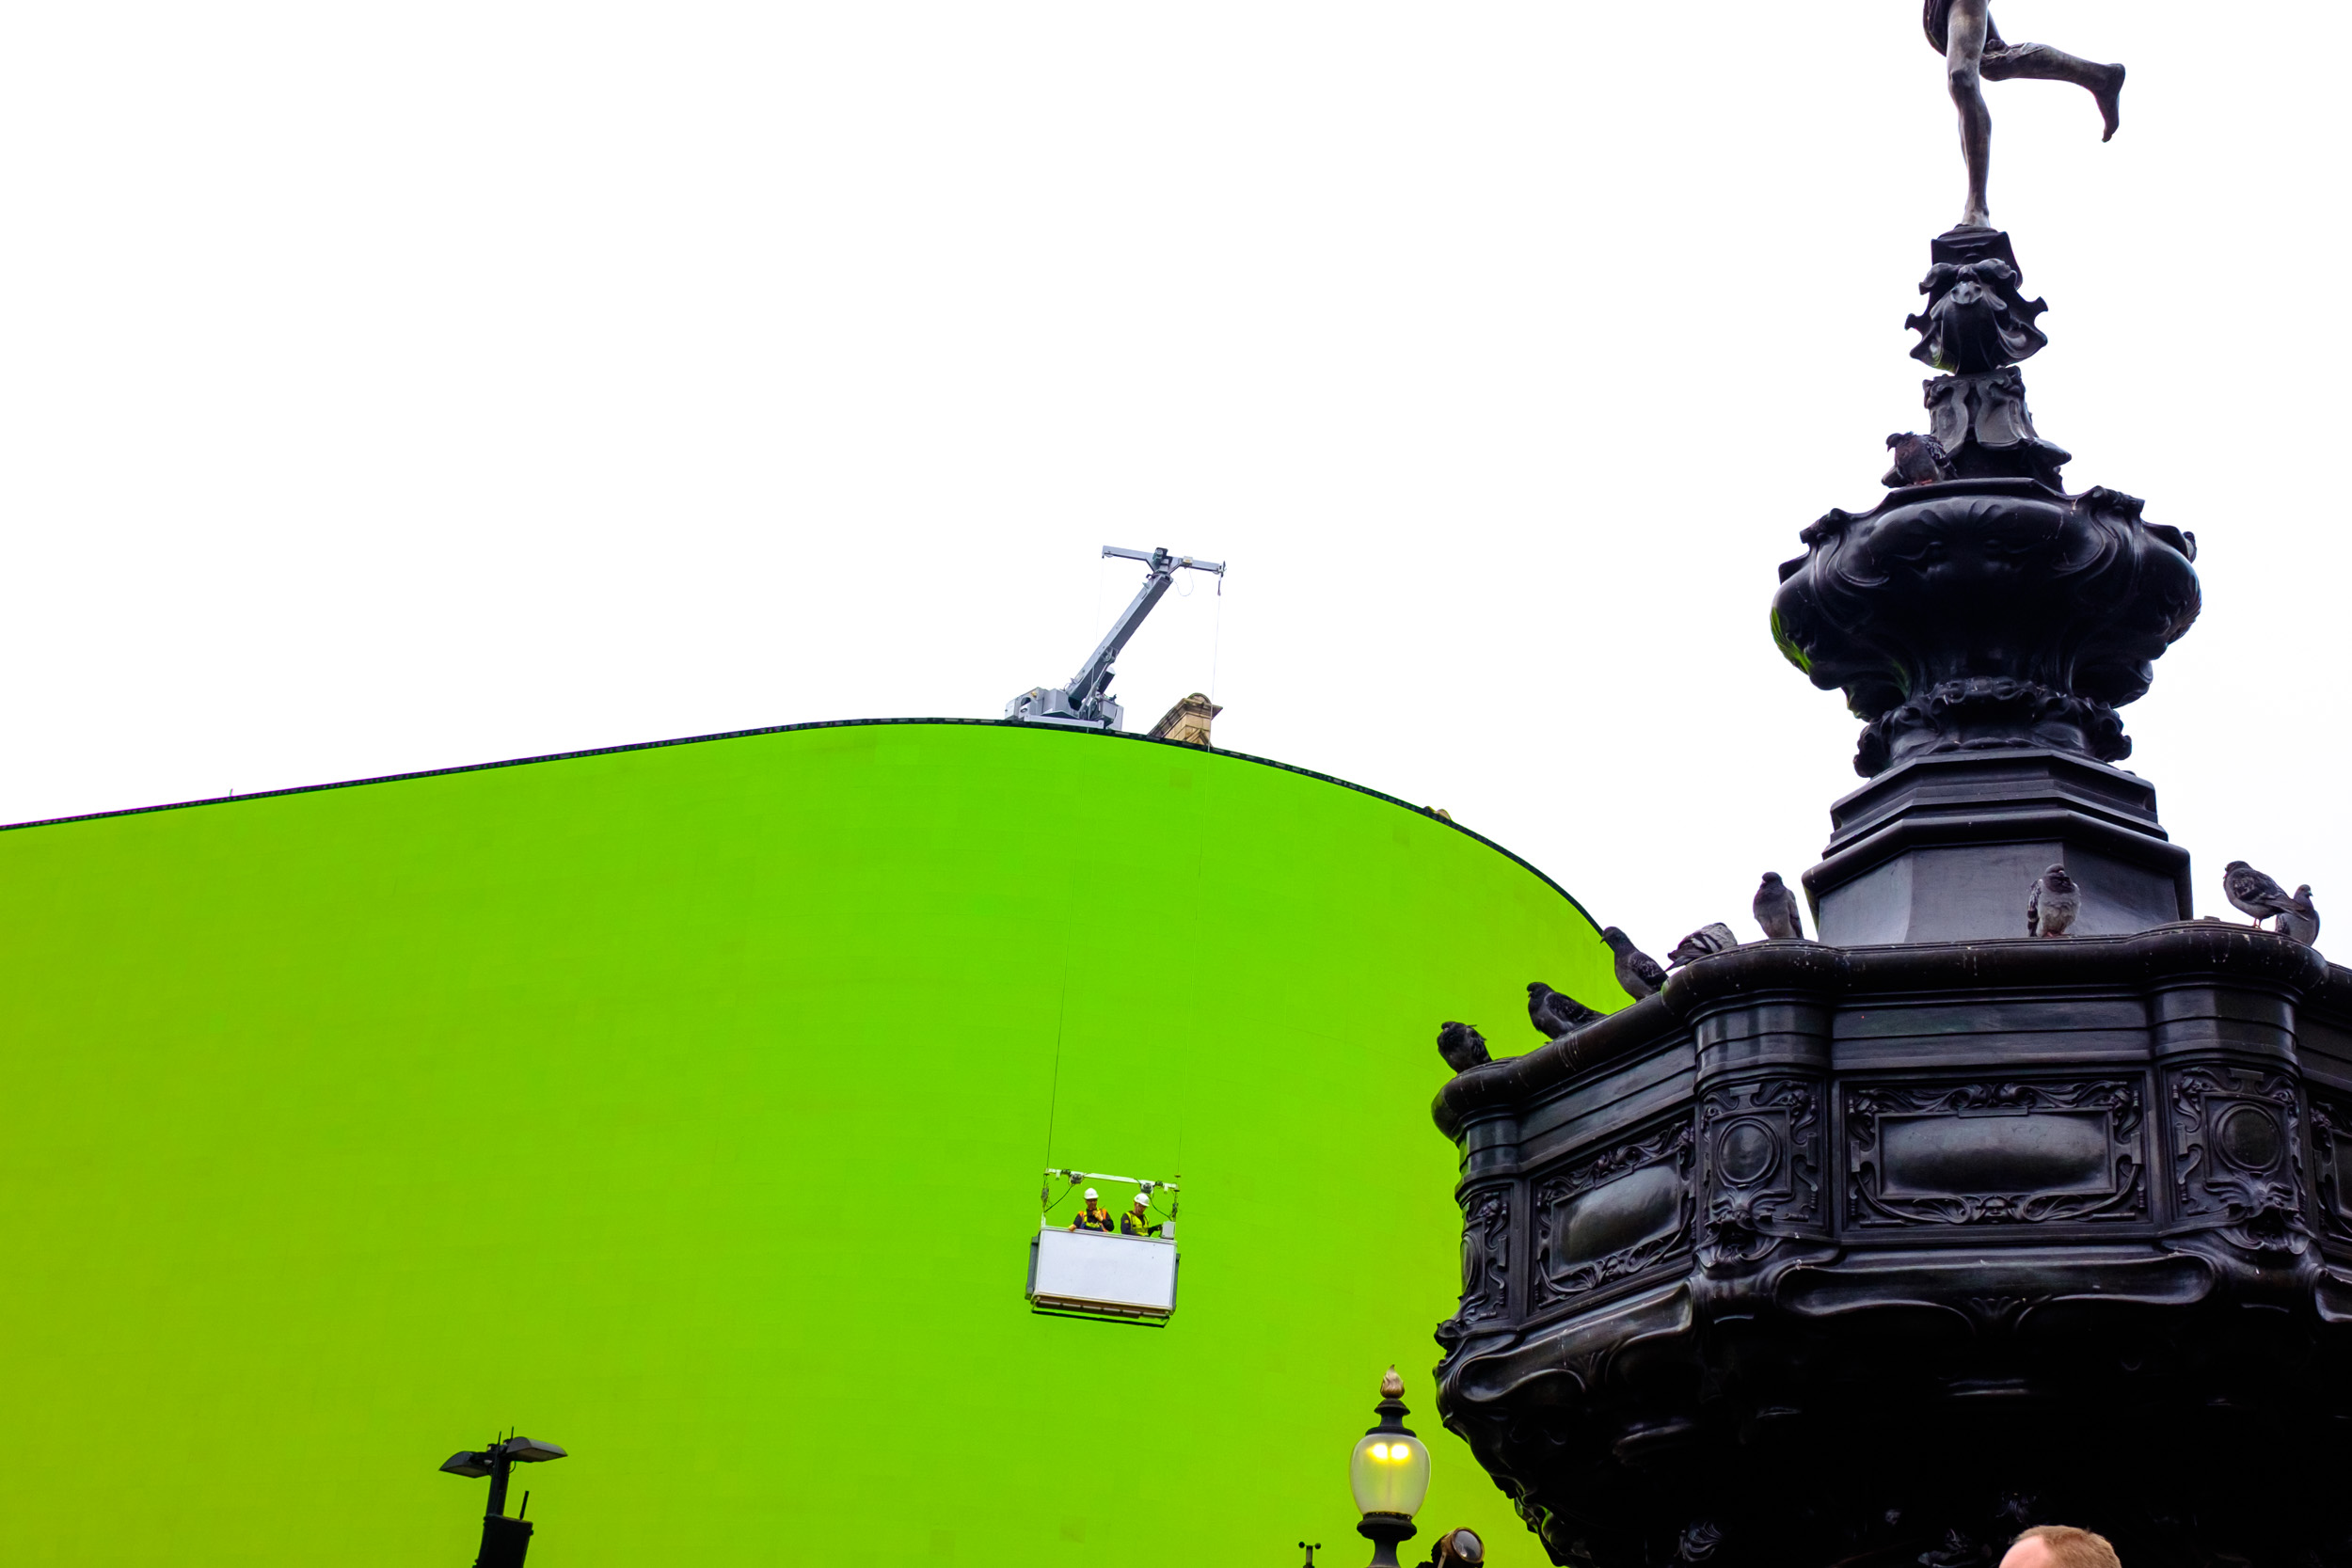 Green Screen, London 2017